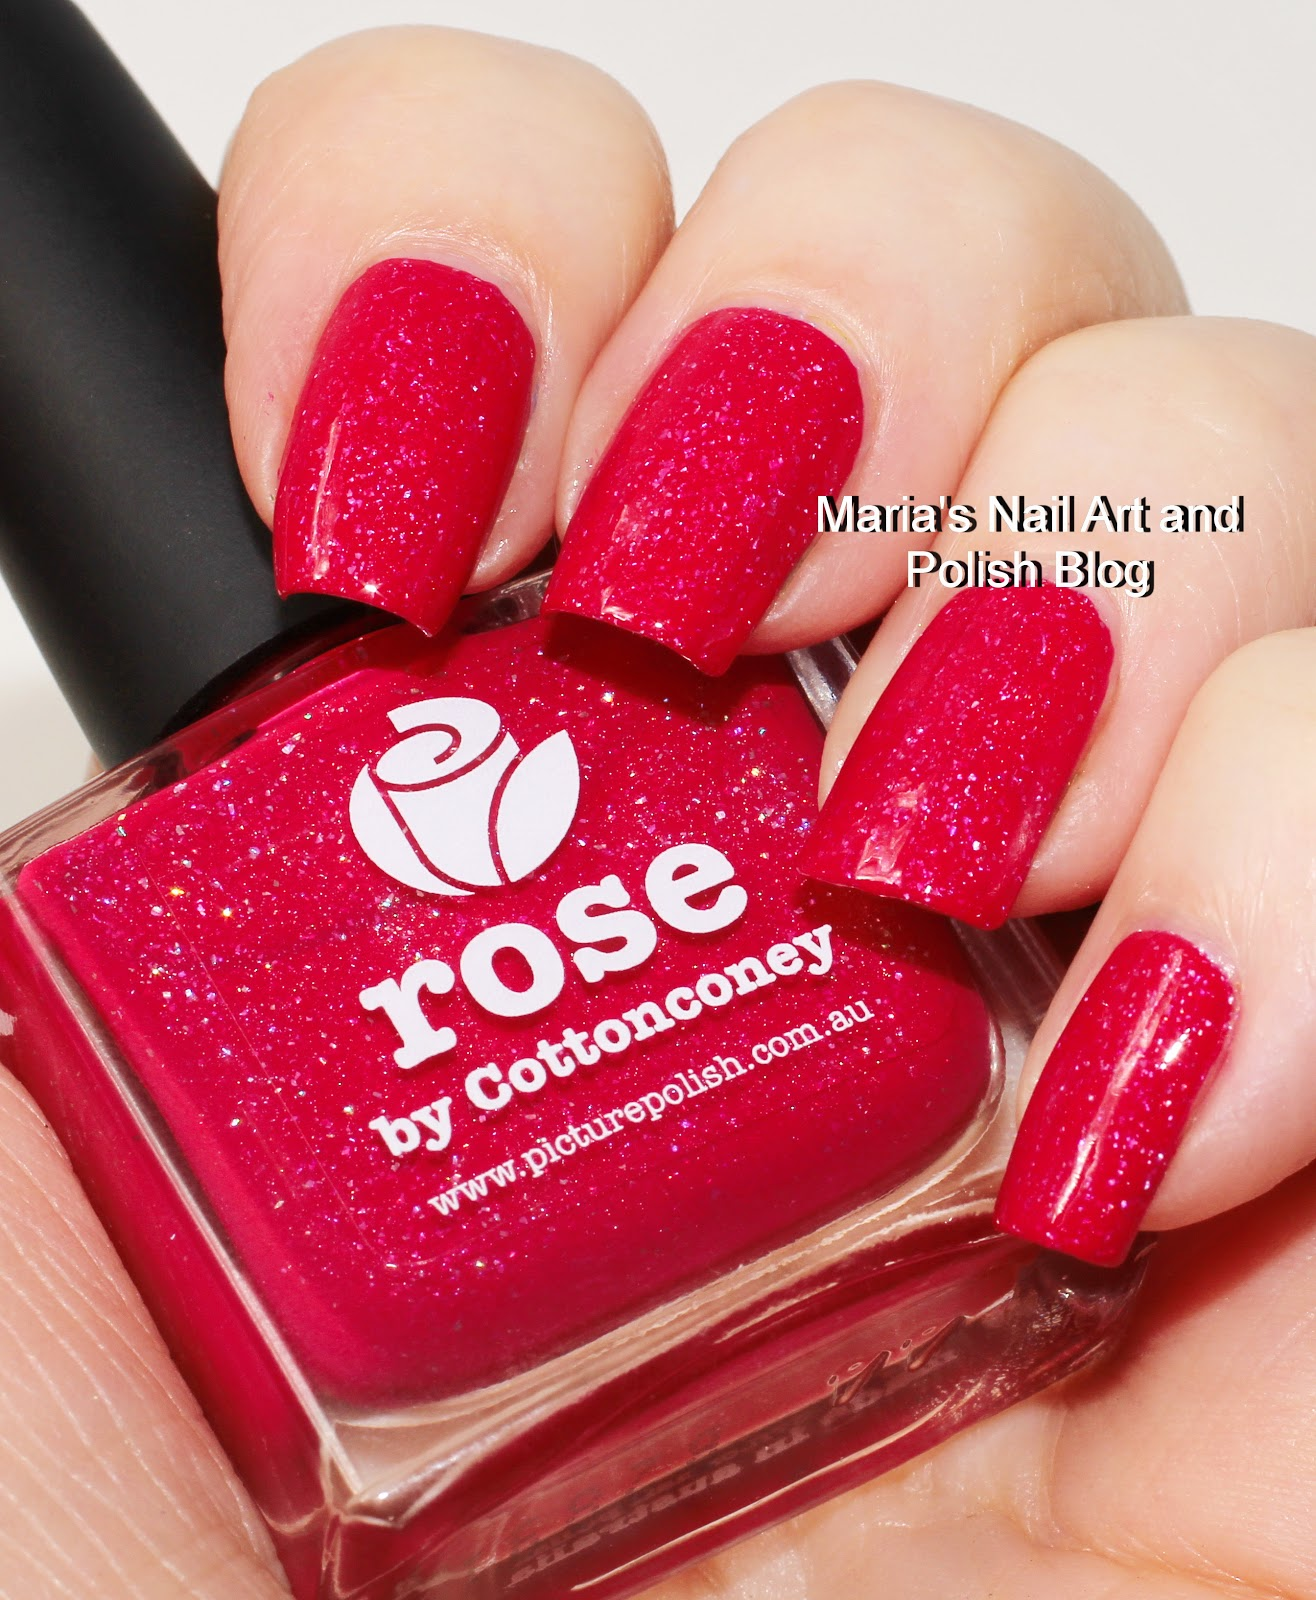 Find great deals on eBay for nail polish rose. Shop with confidence.